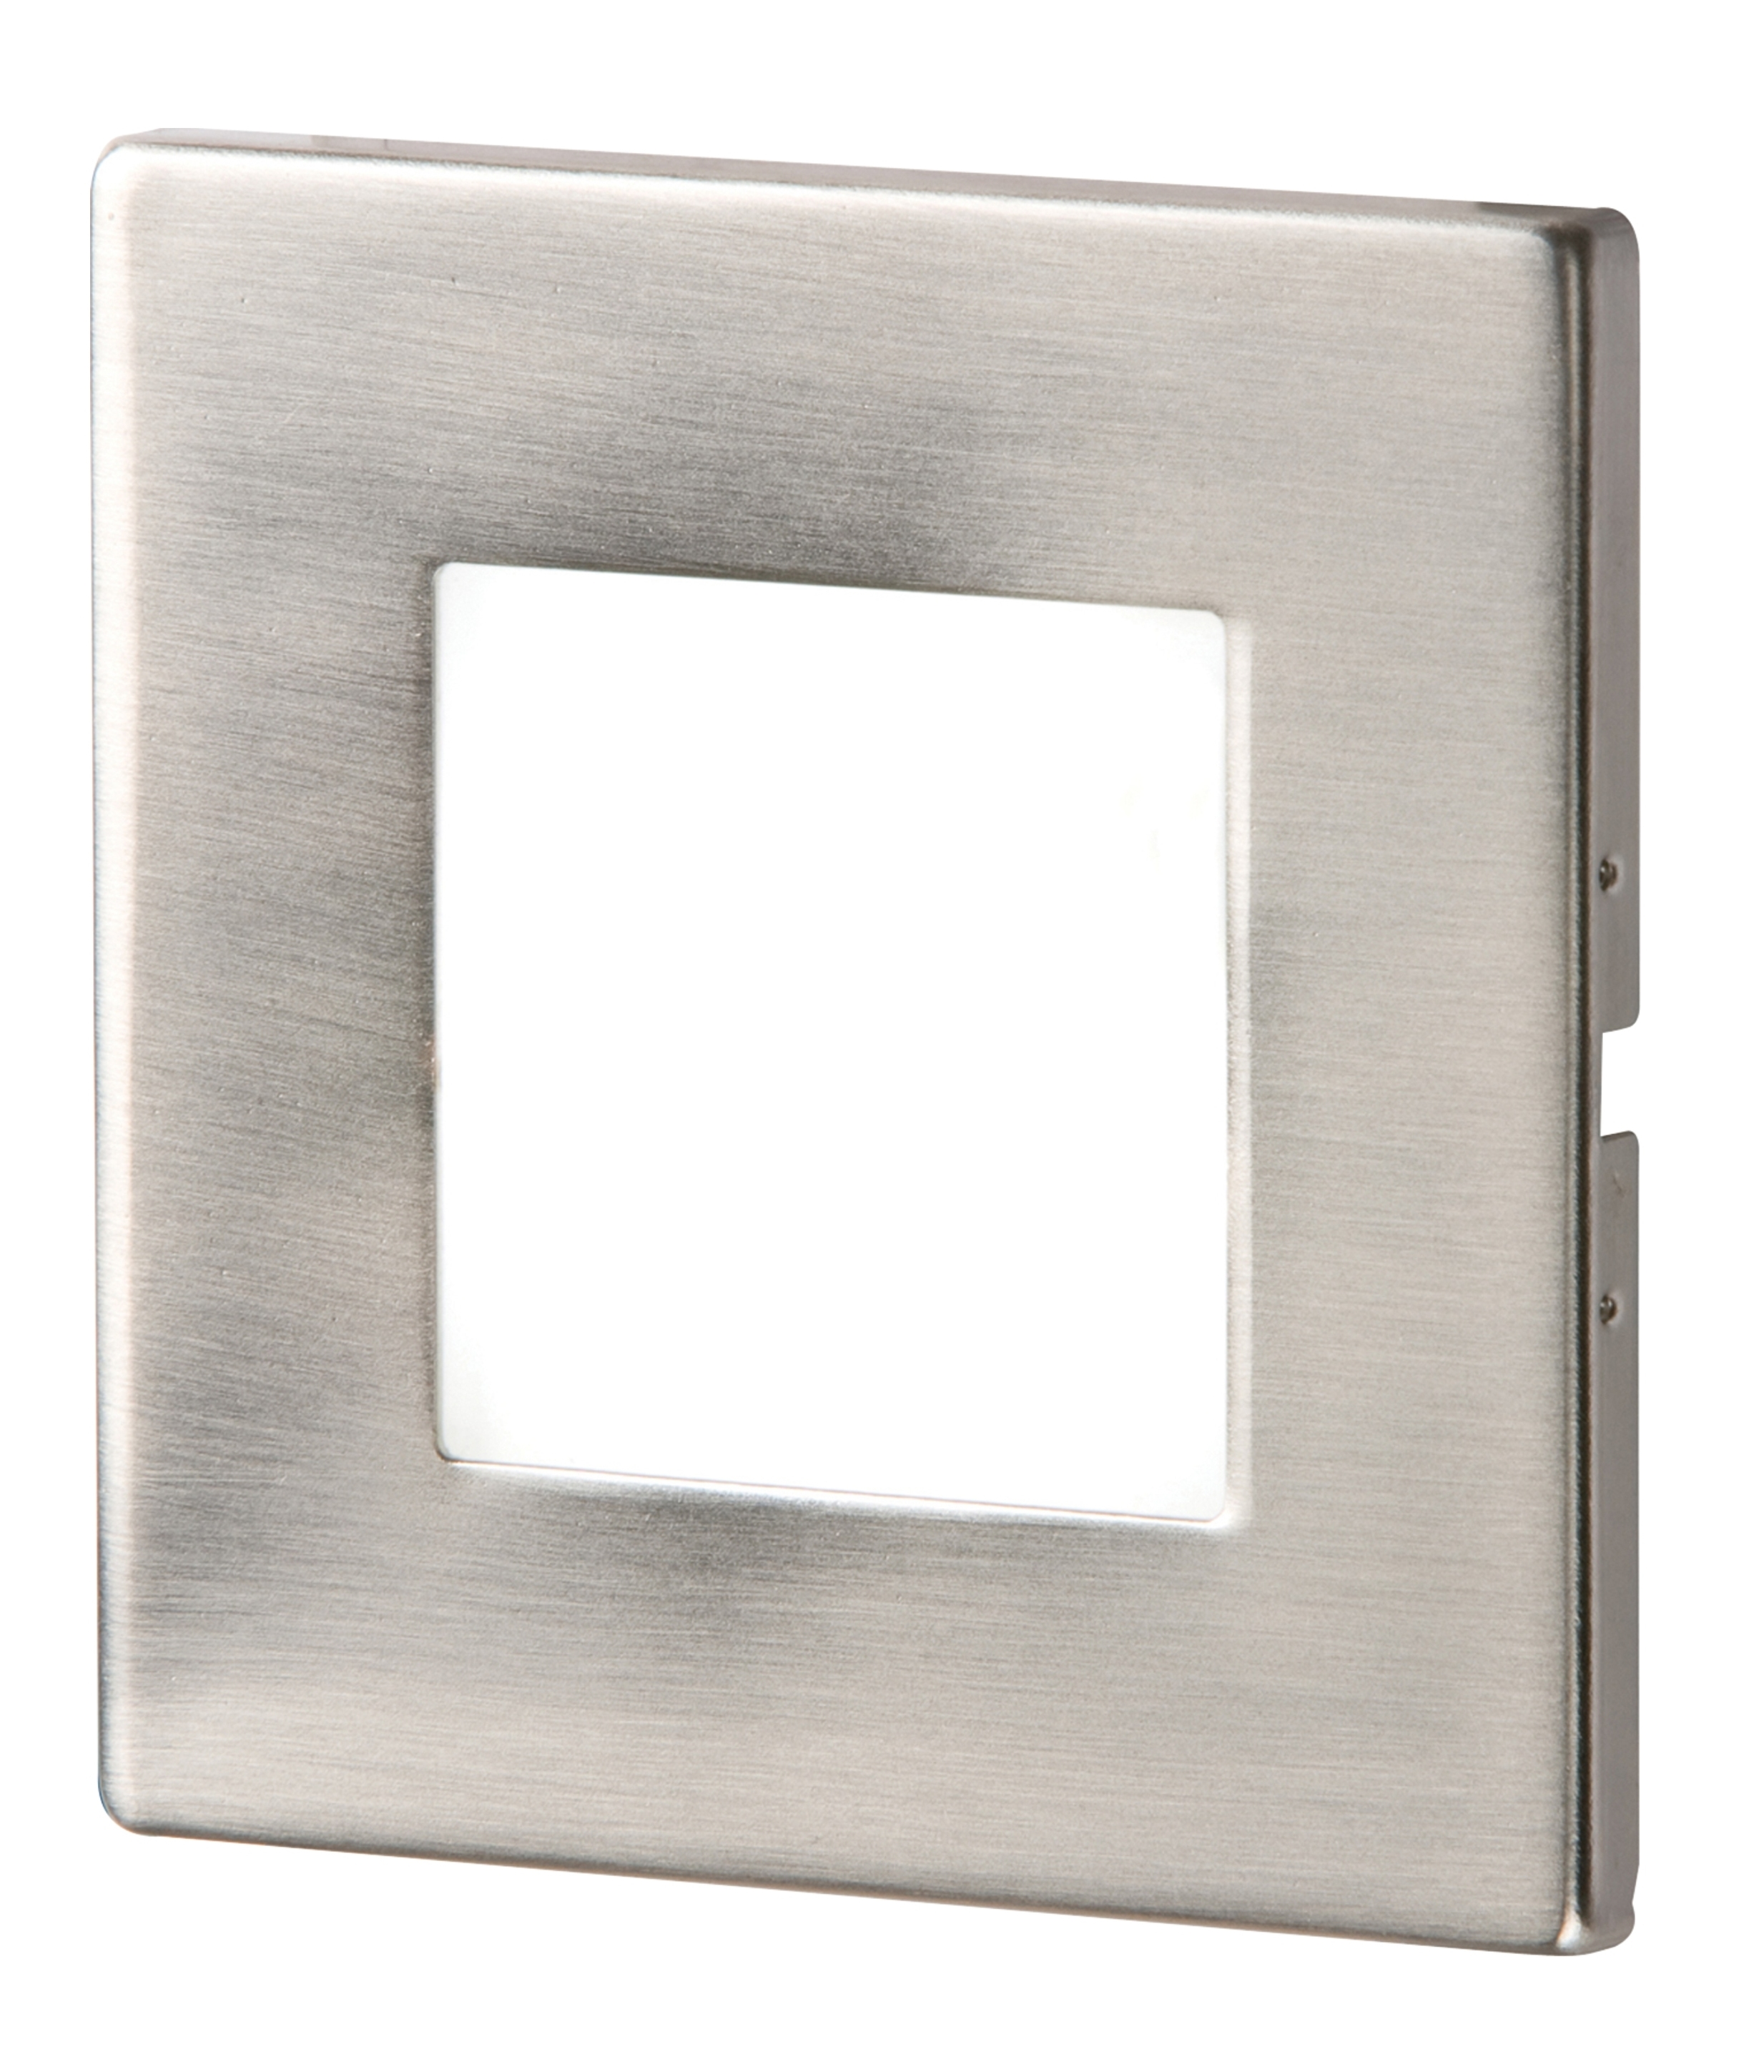 White Or Blue Led Square Low Level Recessed Light